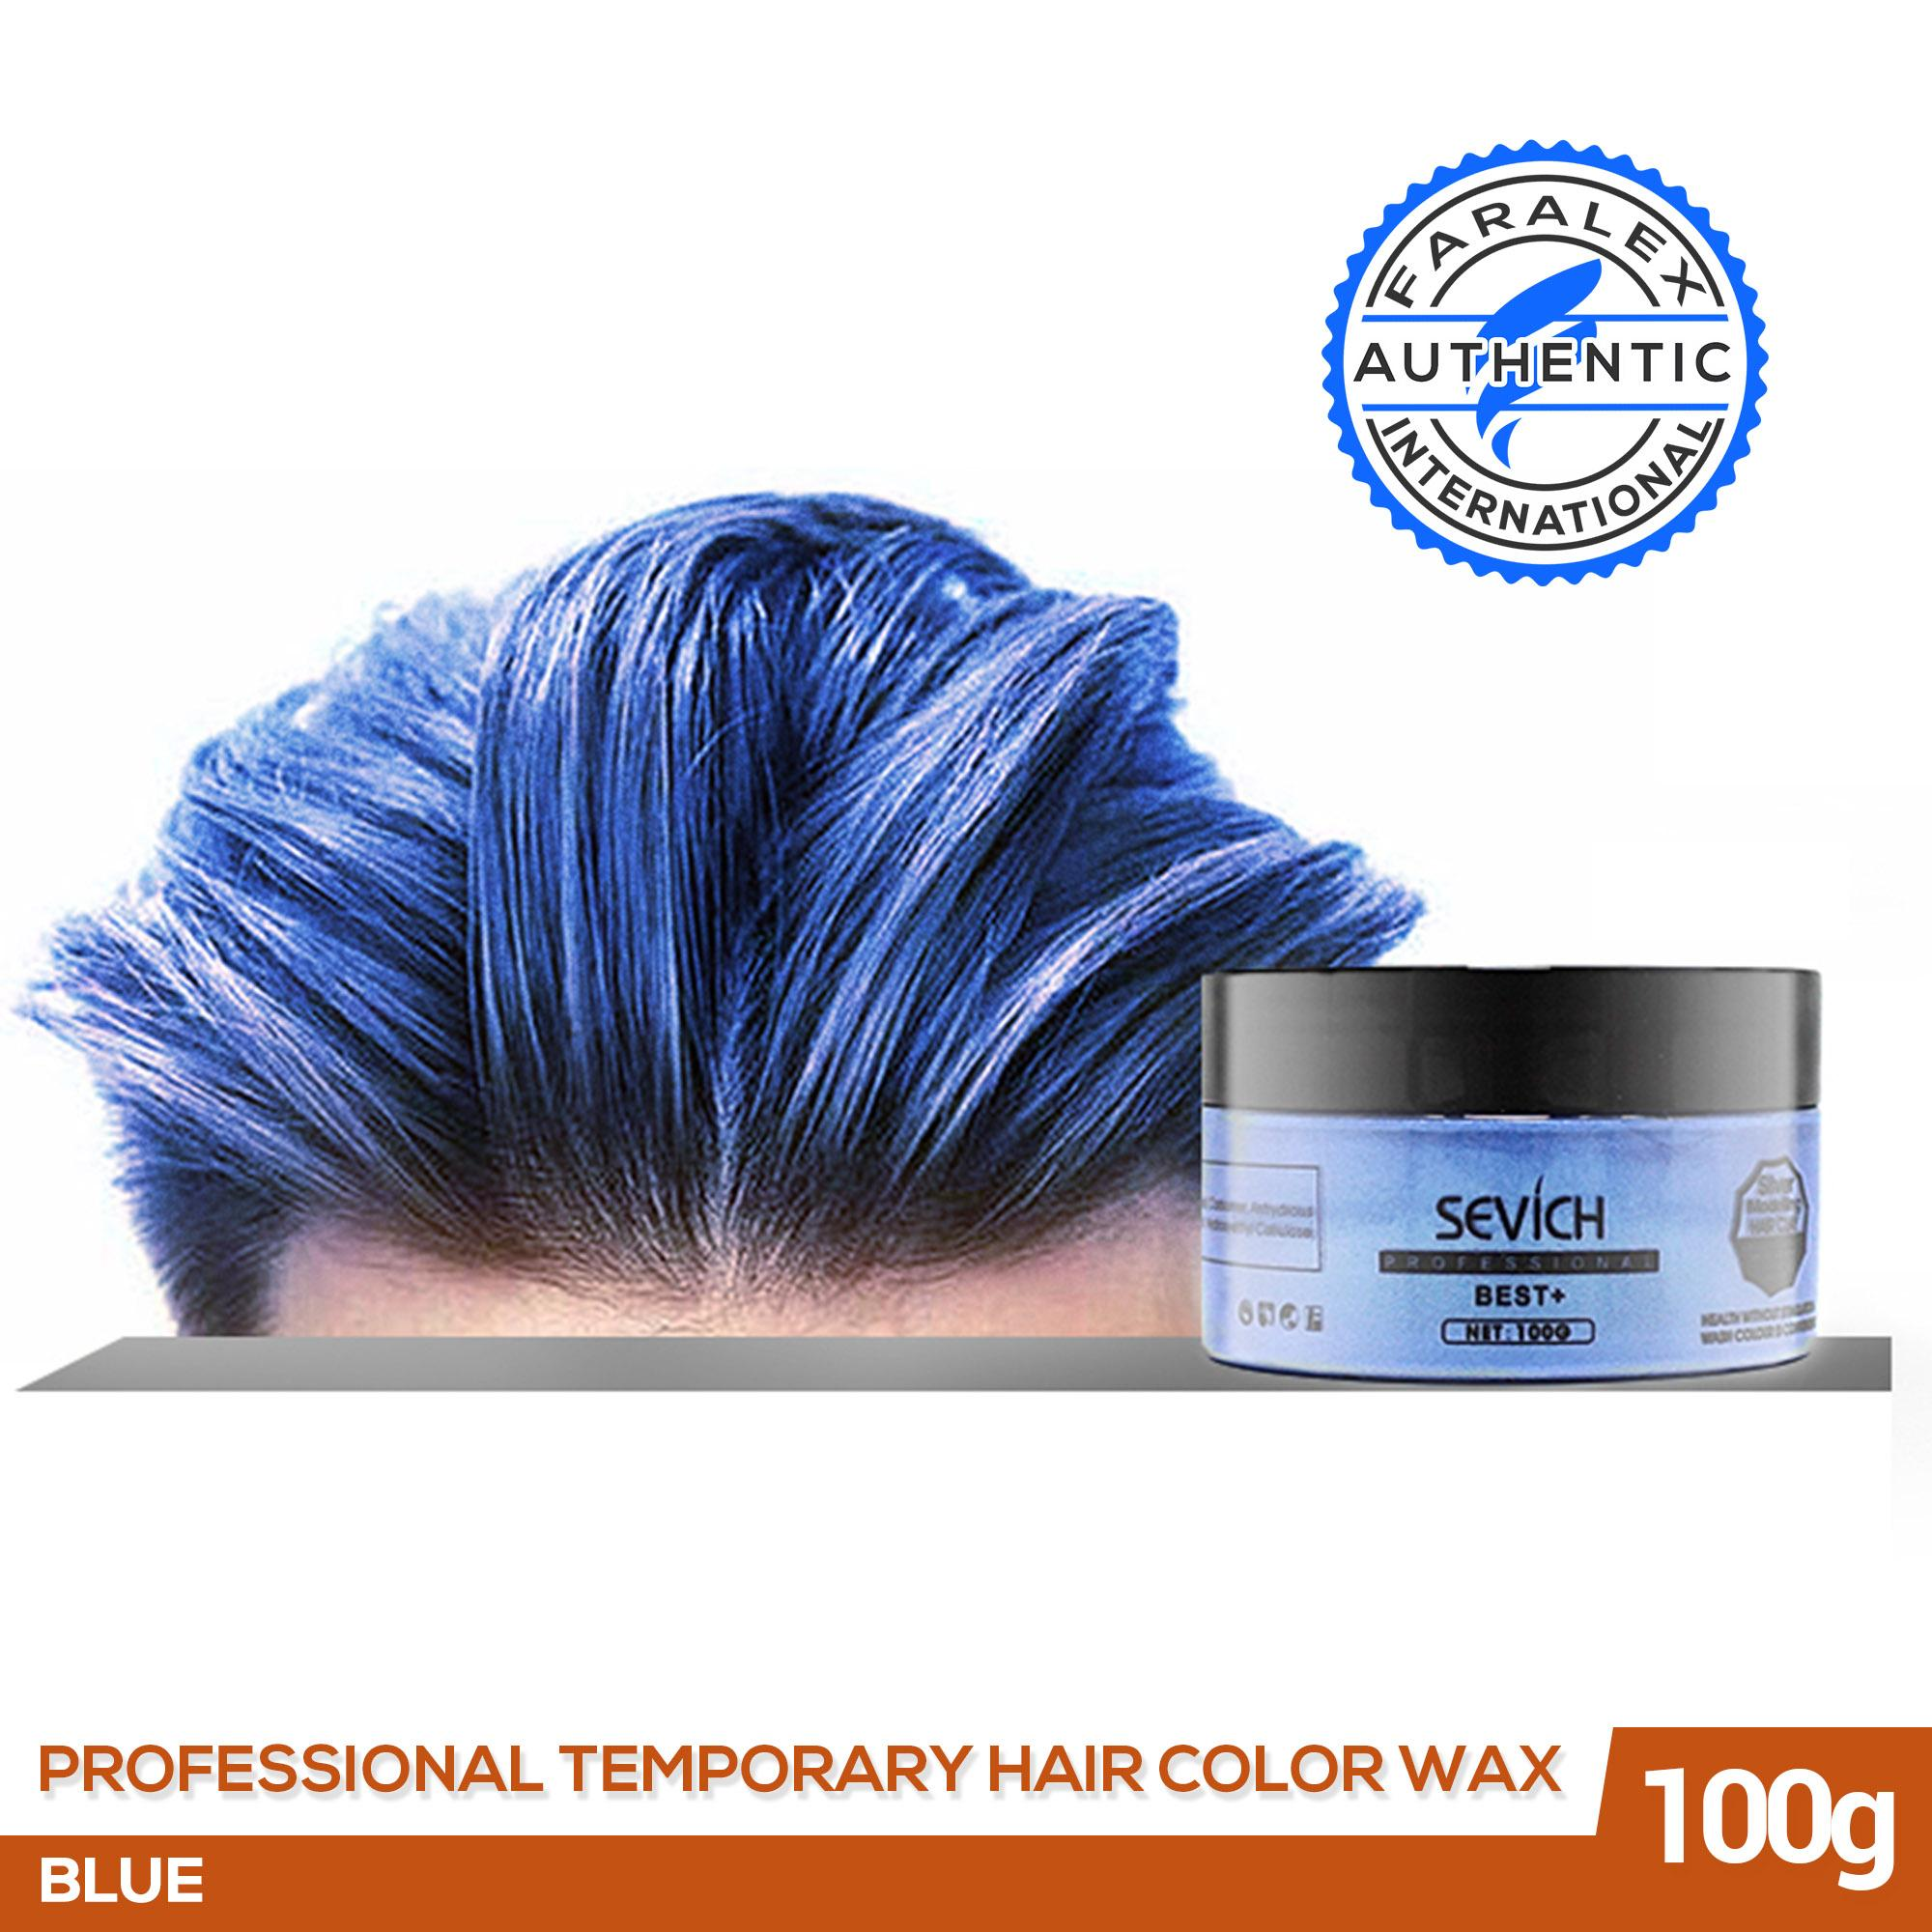 Sevich Professional Temporary Hair Color Wax (BLUE - 100G), Instant  Hairstyle Dye for Men and Women Fashion Hair, Faralex Washable Hair Color  Dye